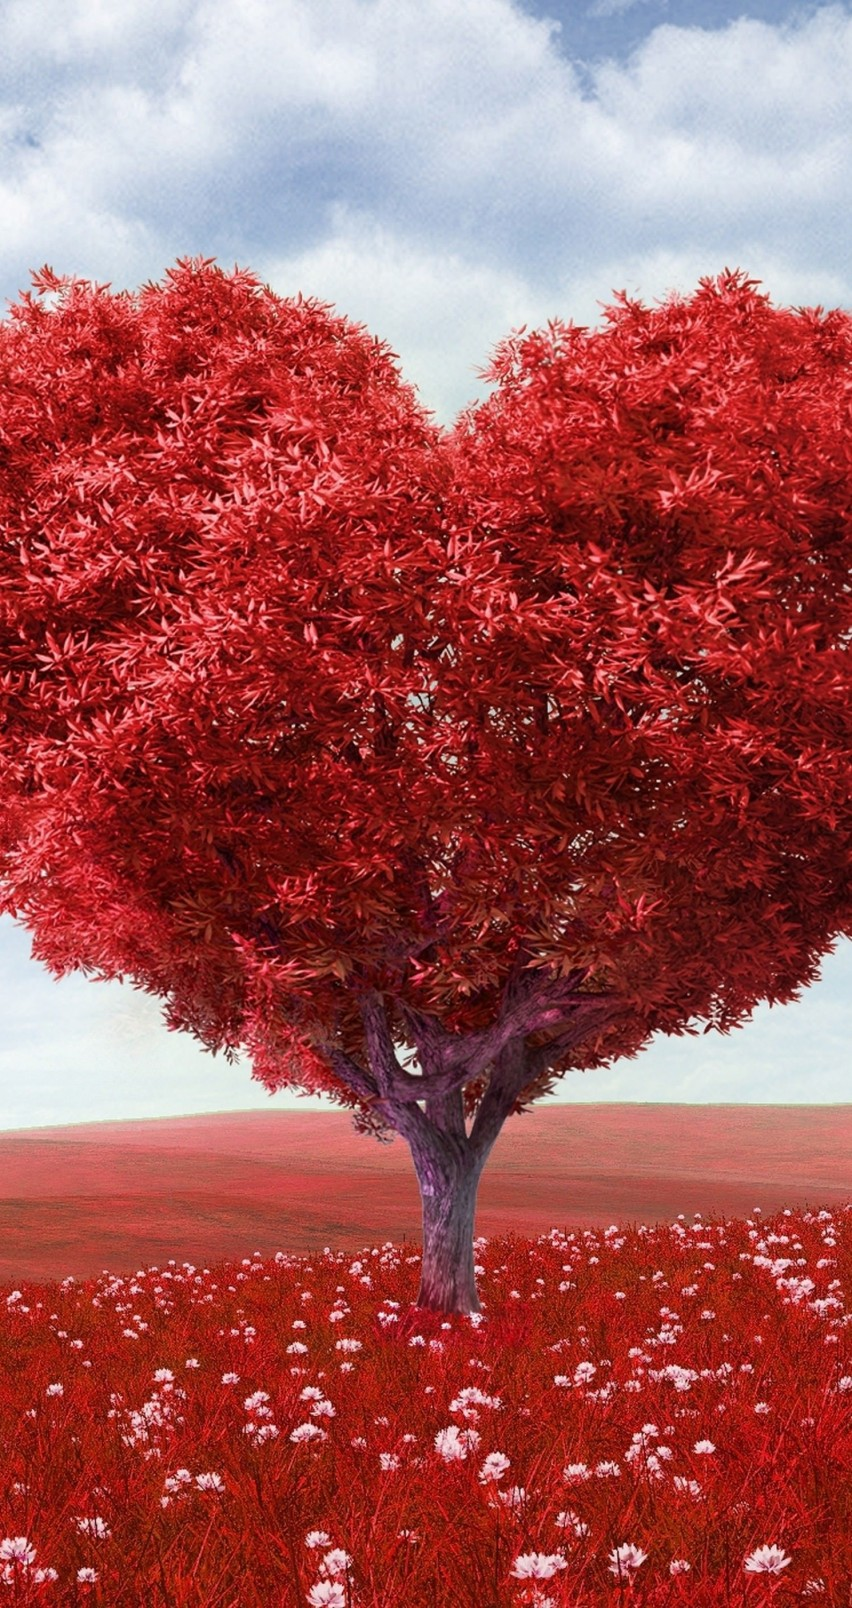 The Tree Of Love Wallpaper for Apple iPhone 6 / 6s